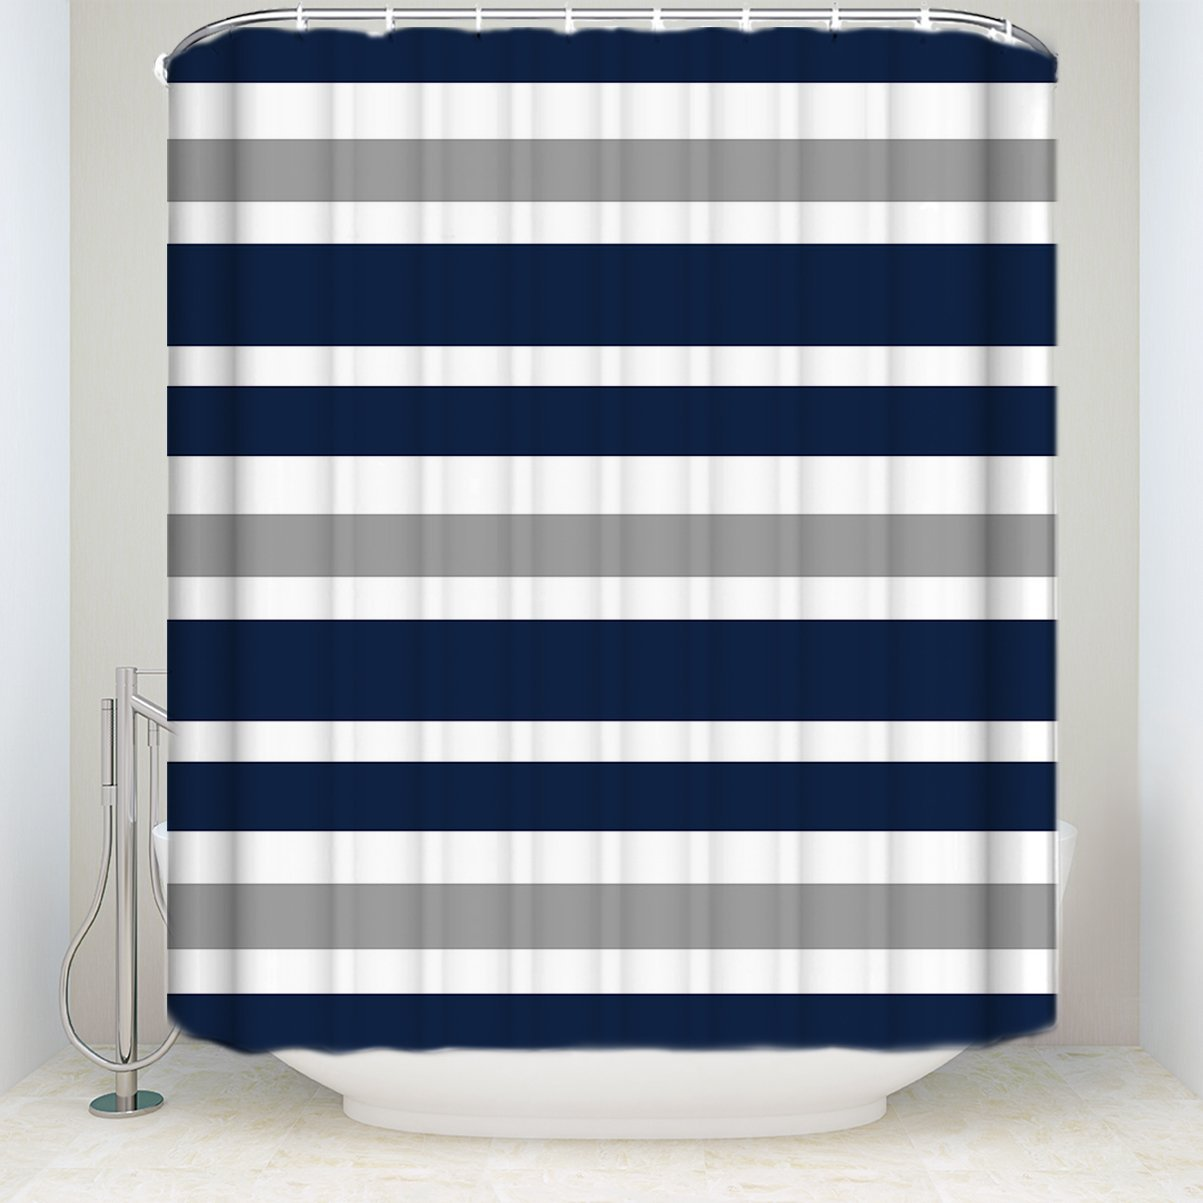 Us 17 34 35 Off Designs Navy Blue Gray And White Kids Bathroom Waterproof Polyester Fabric Bath Teen Stripe Shower Curtain Shower Curtains In Shower